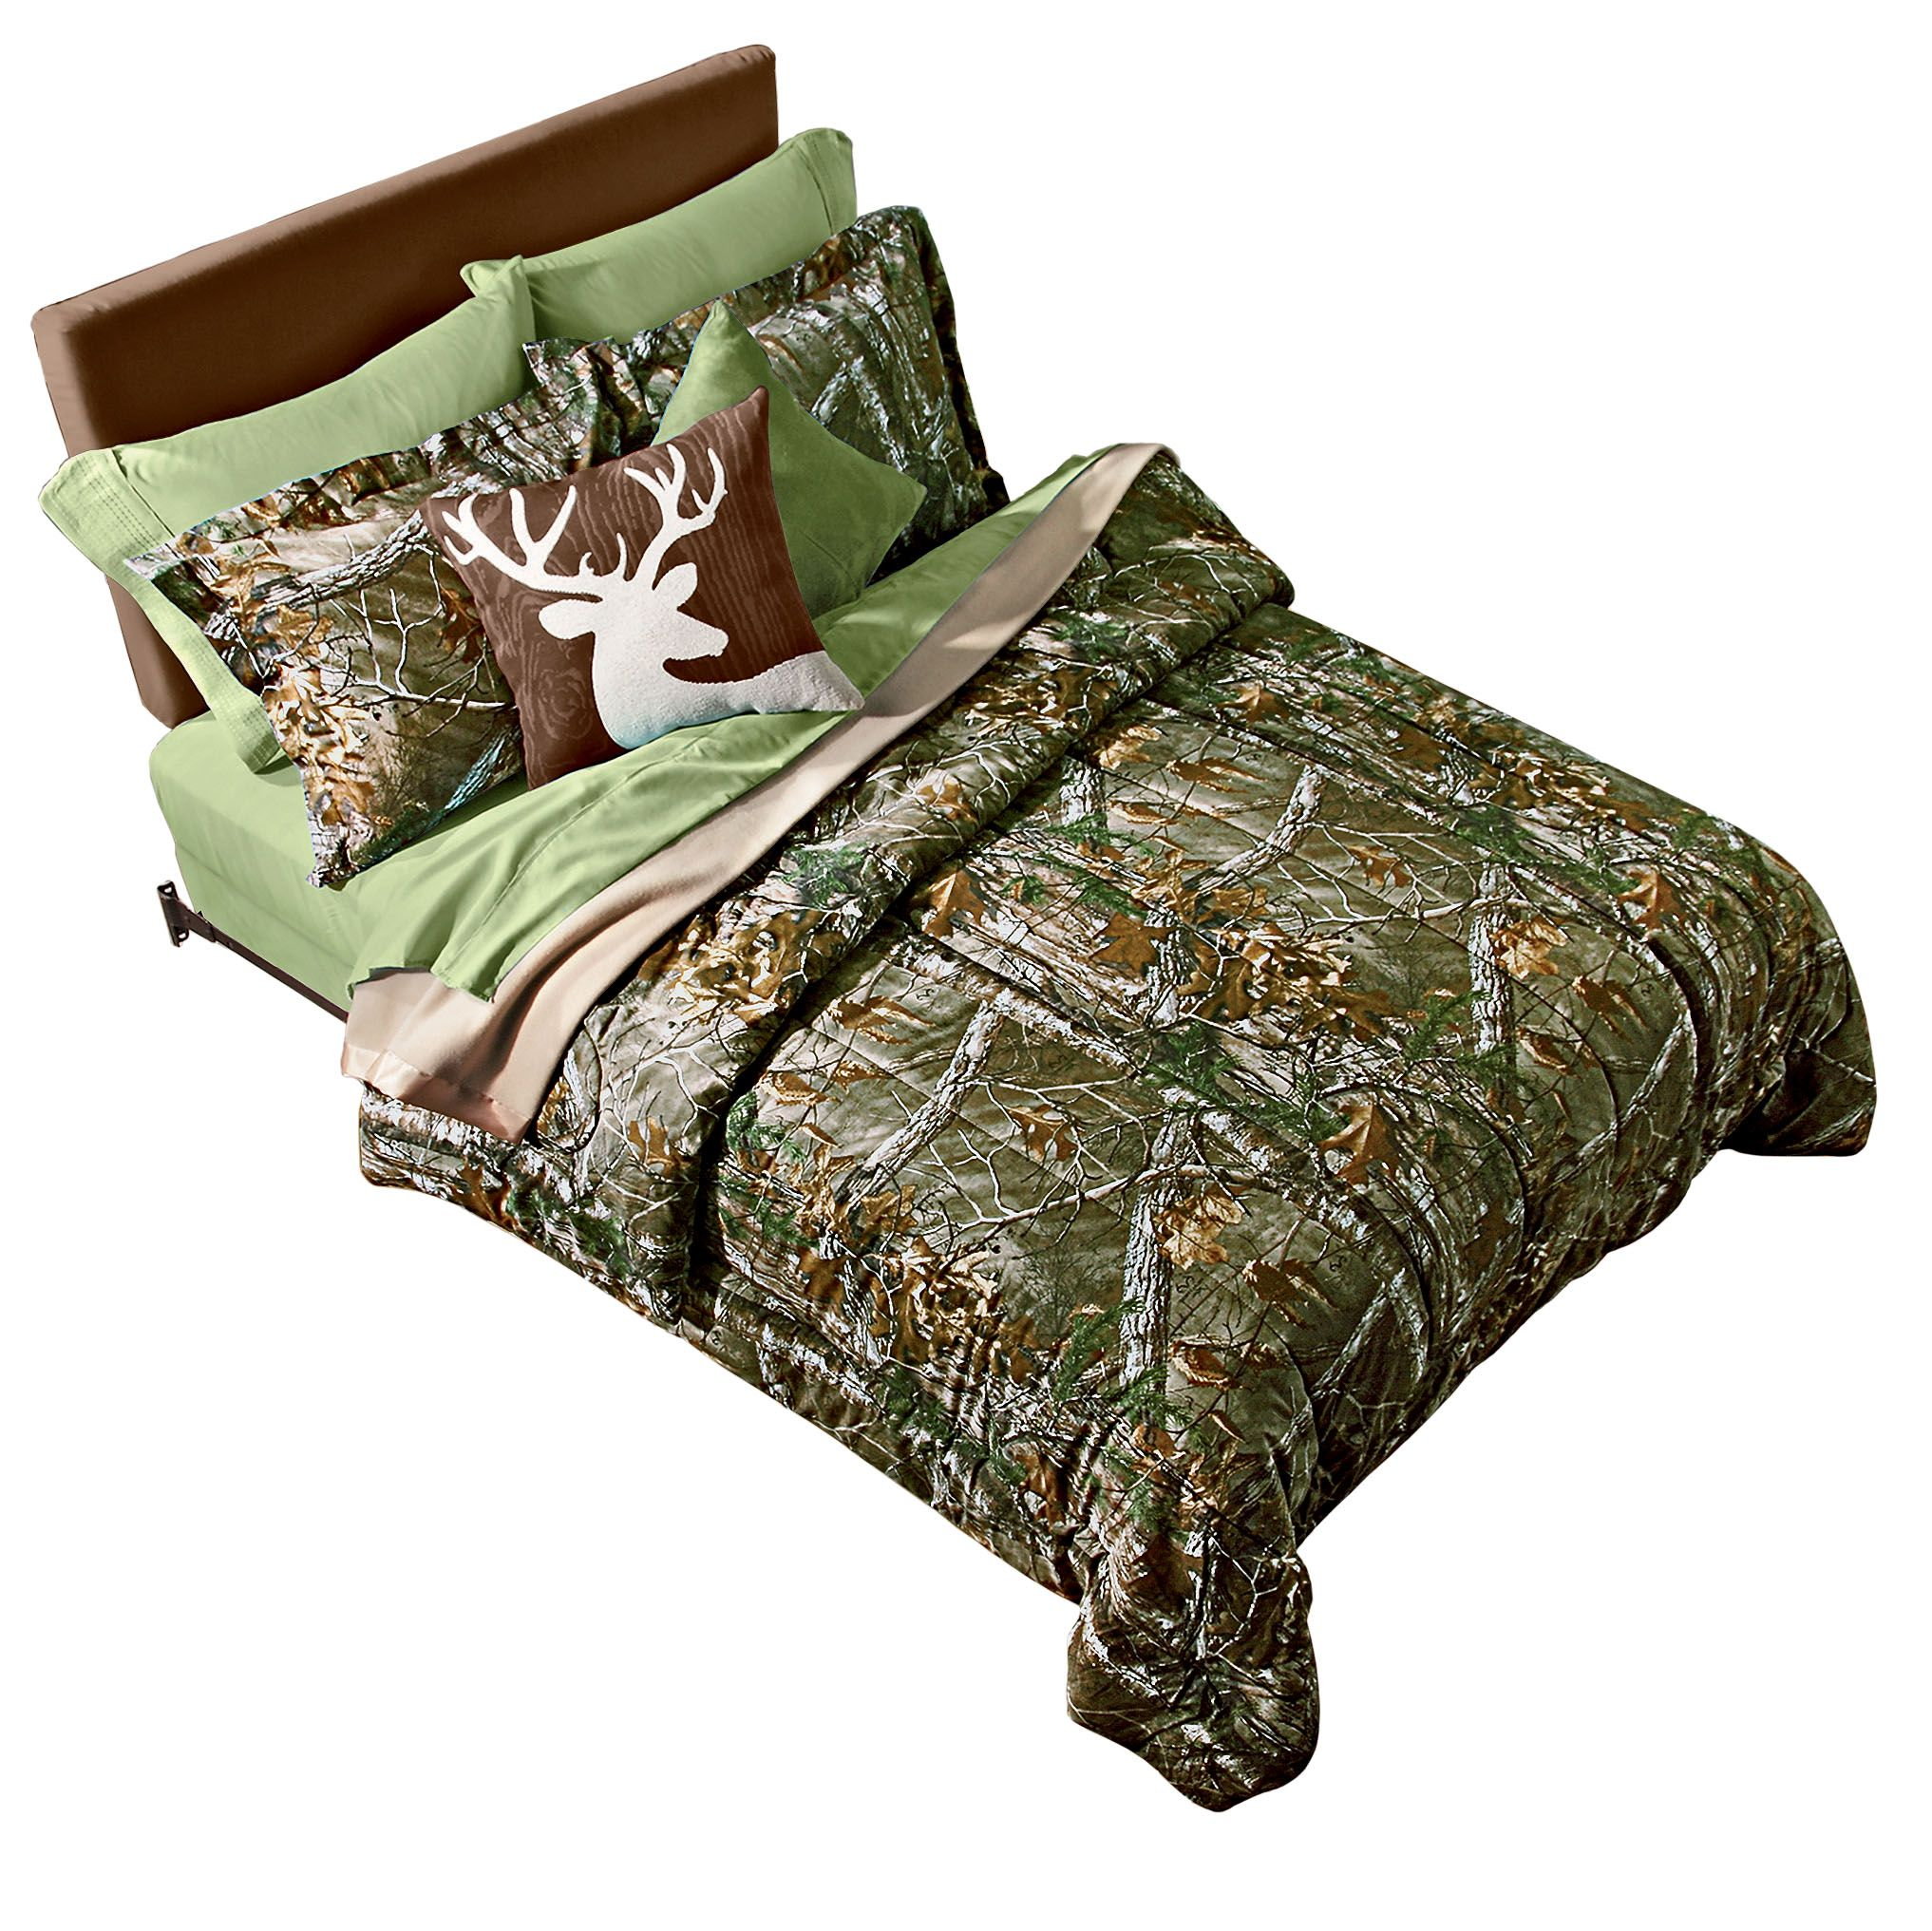 Sawing logs in Realtree bedding! #shopko | Casa ...